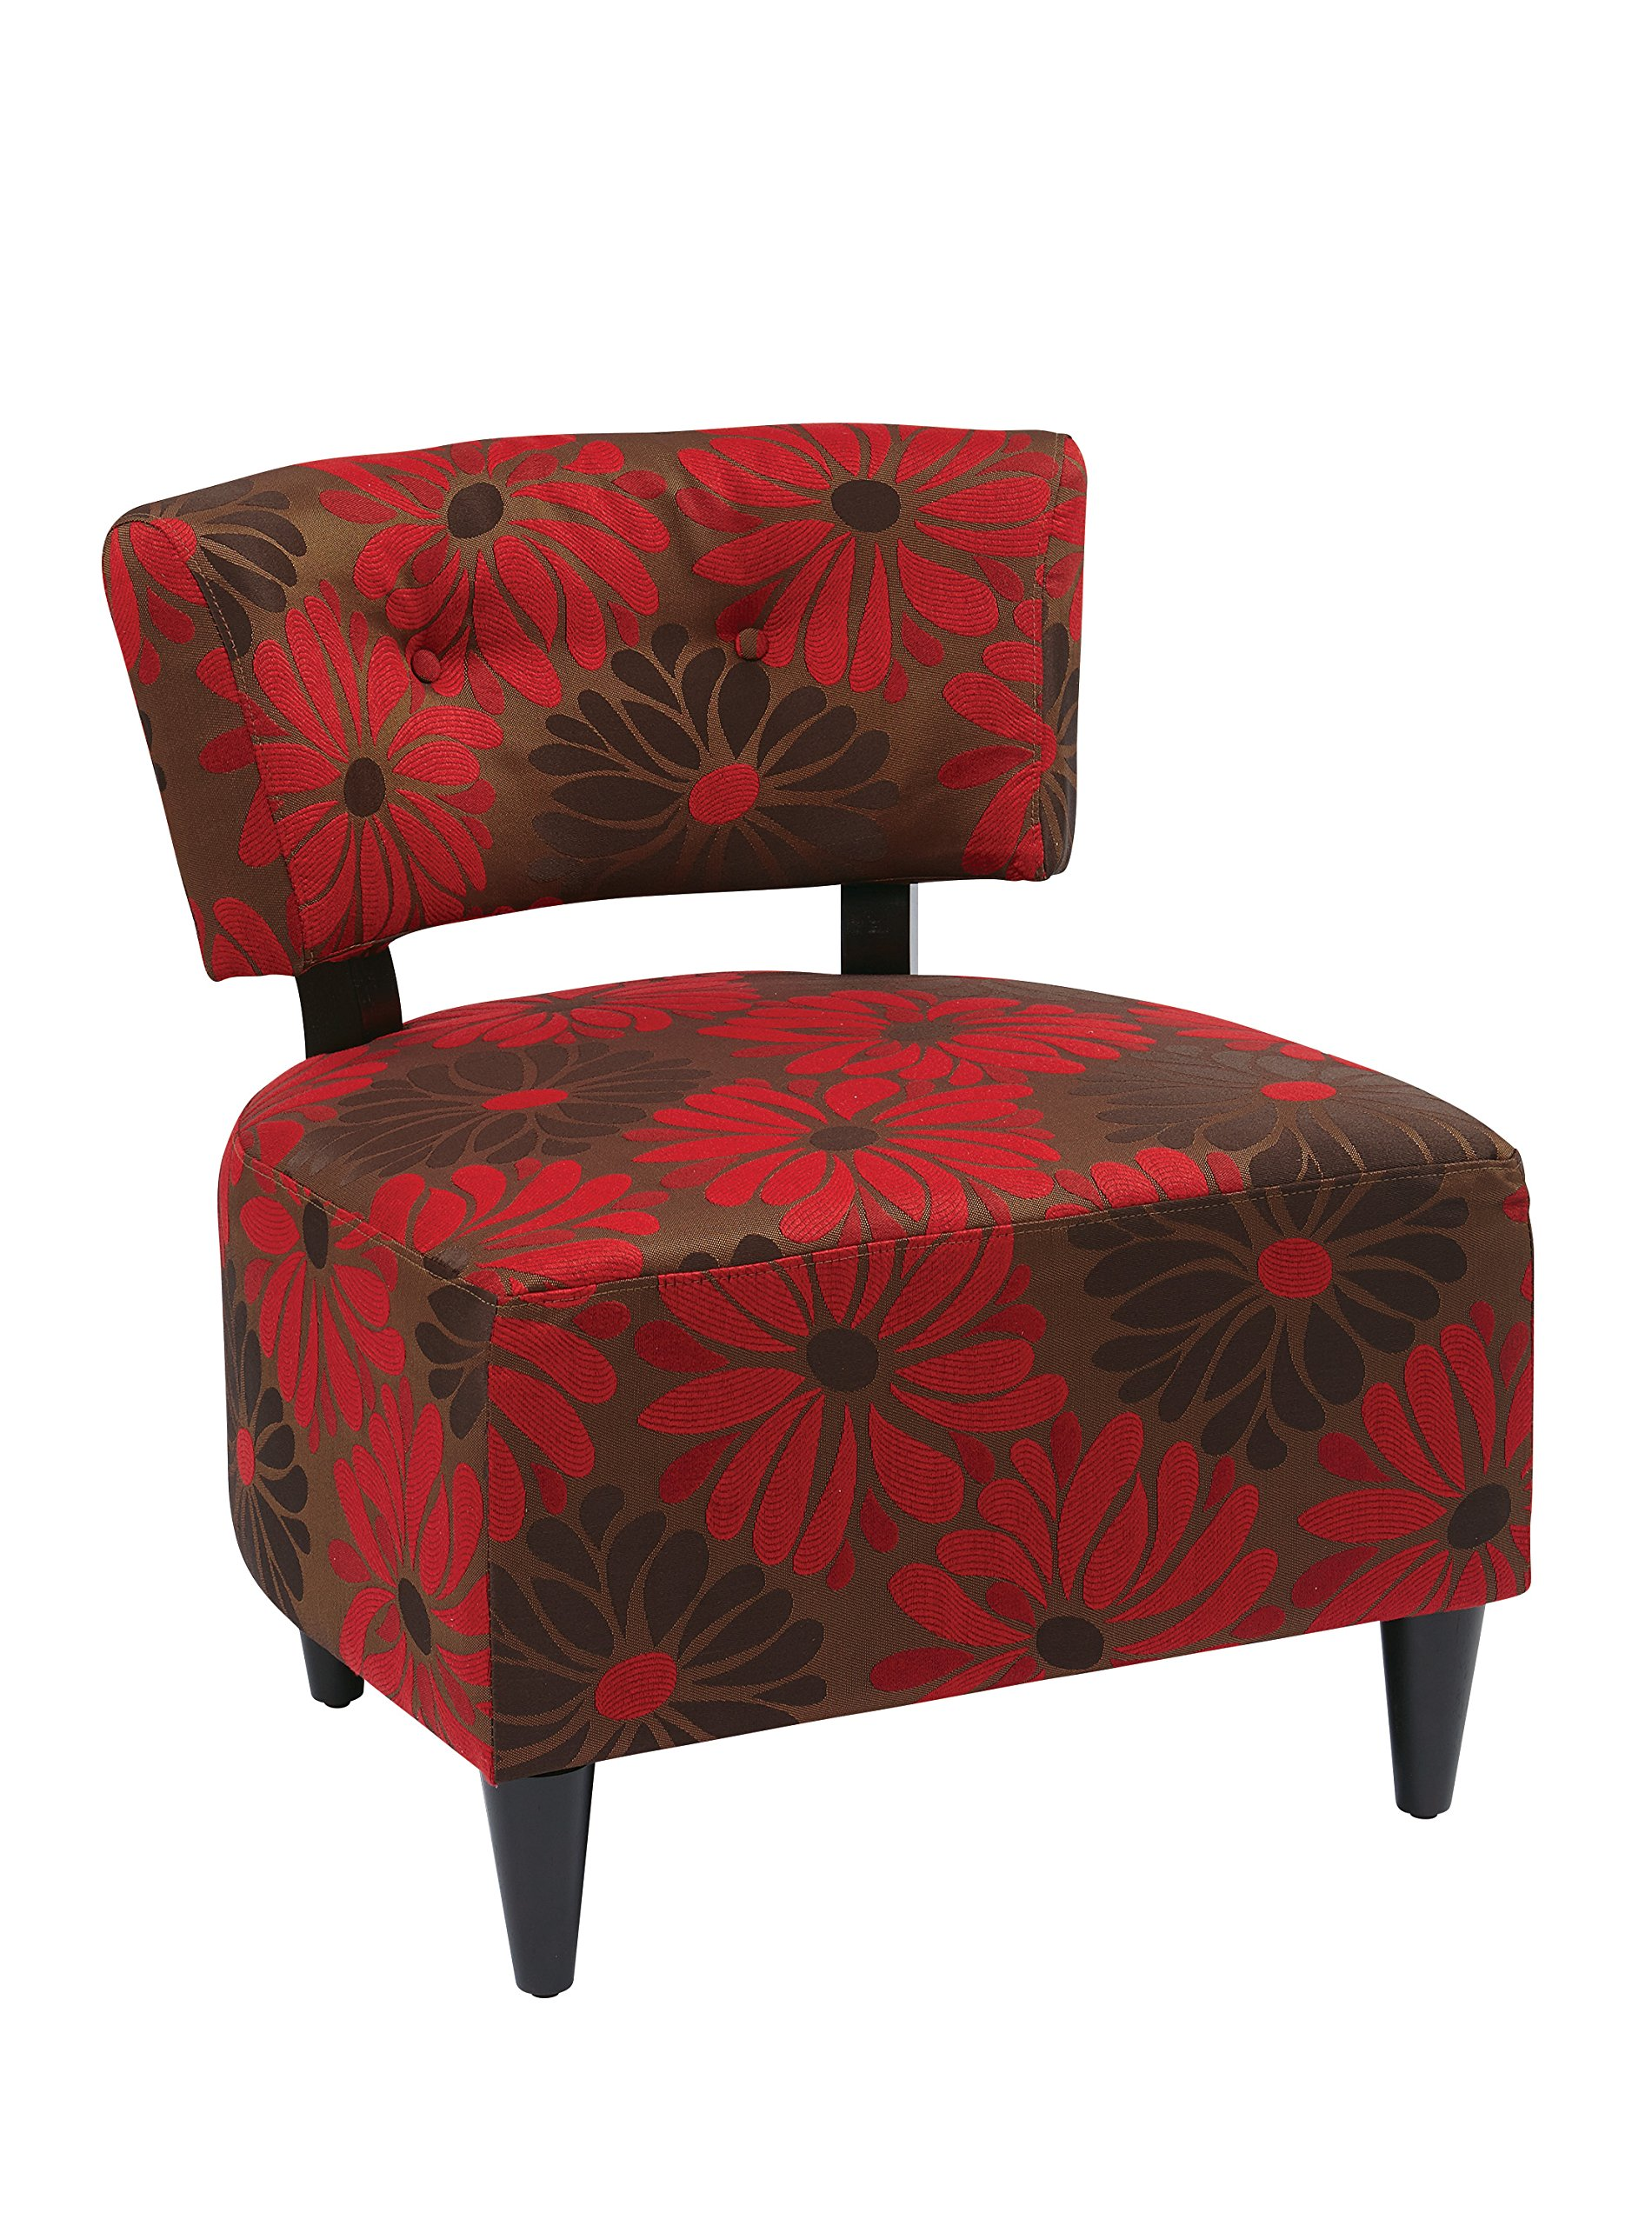 Red and Brown Flower Print Fabric Accent Chair